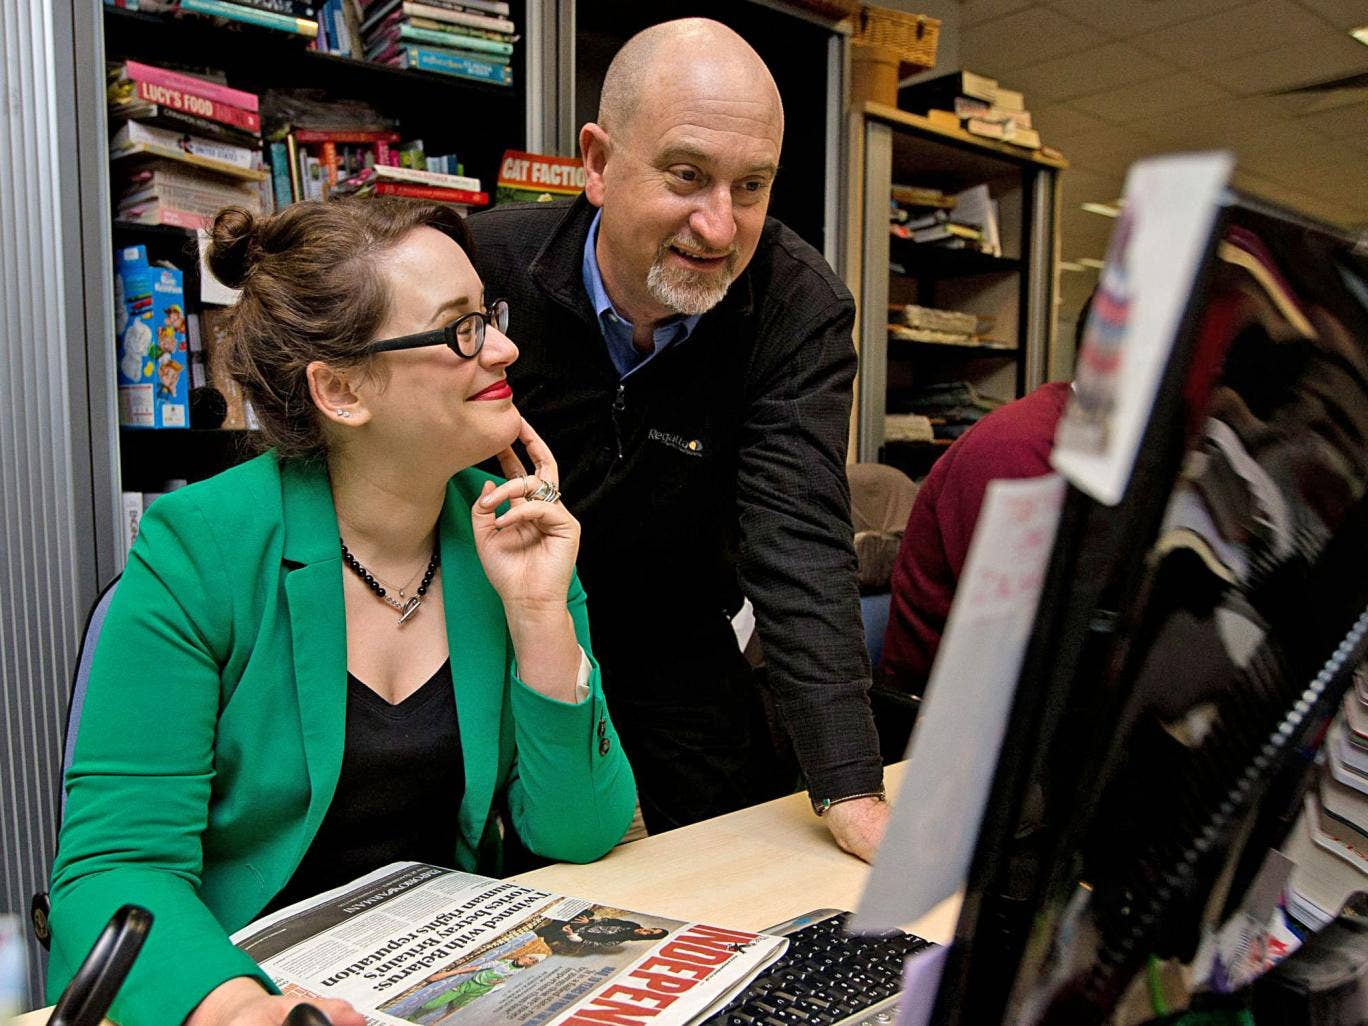 Father's day: Independent features editor Rebecca Armstrong shows her dad Mike what she does during a day's work